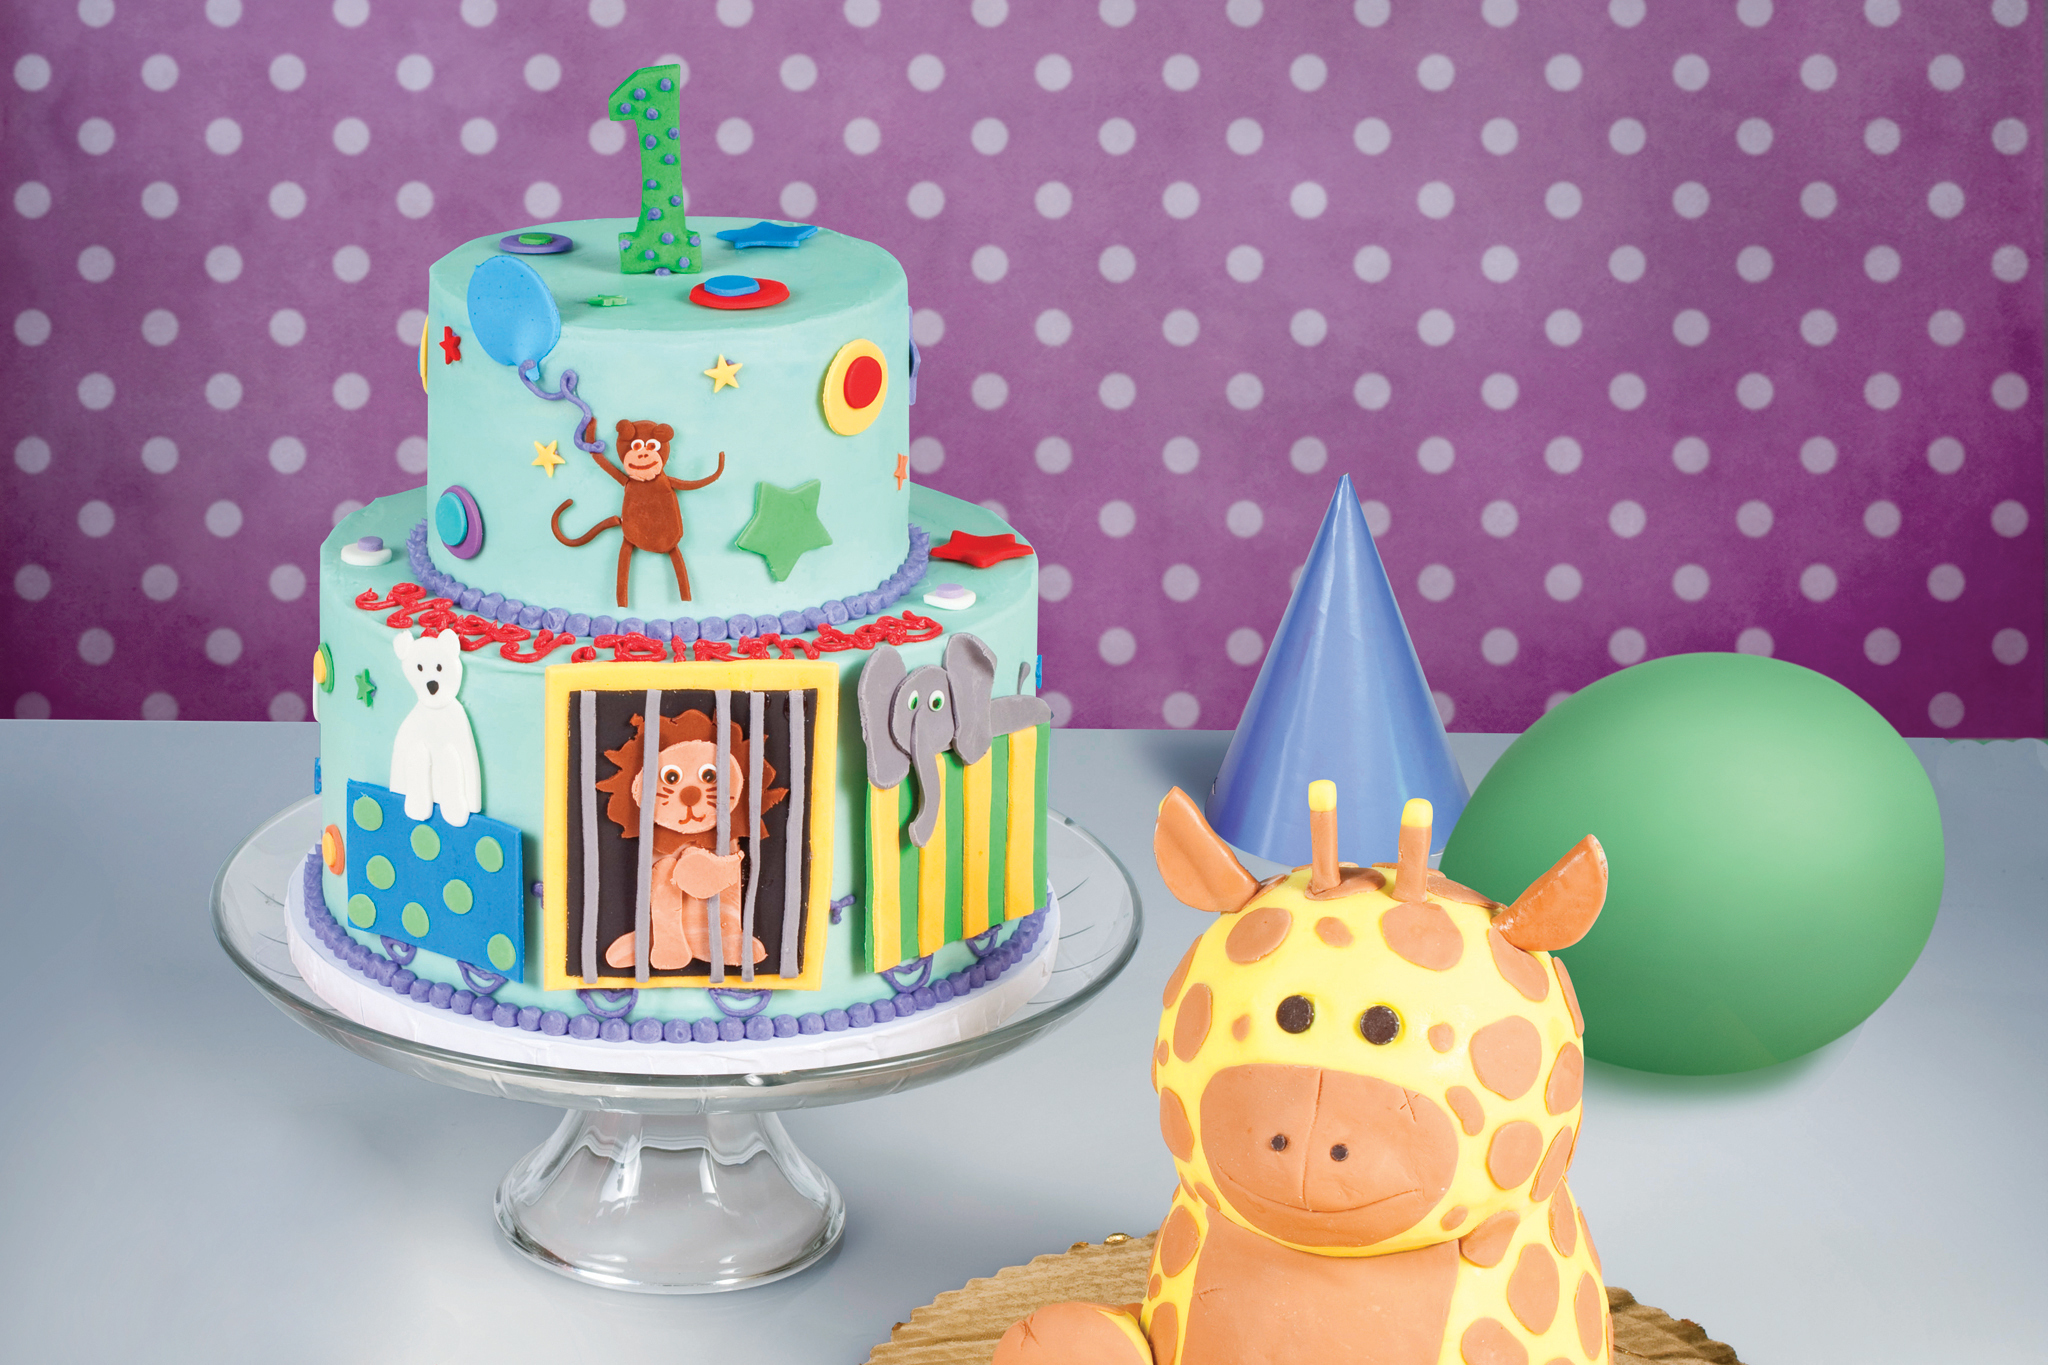 Best birthday cakes for kids in New York City